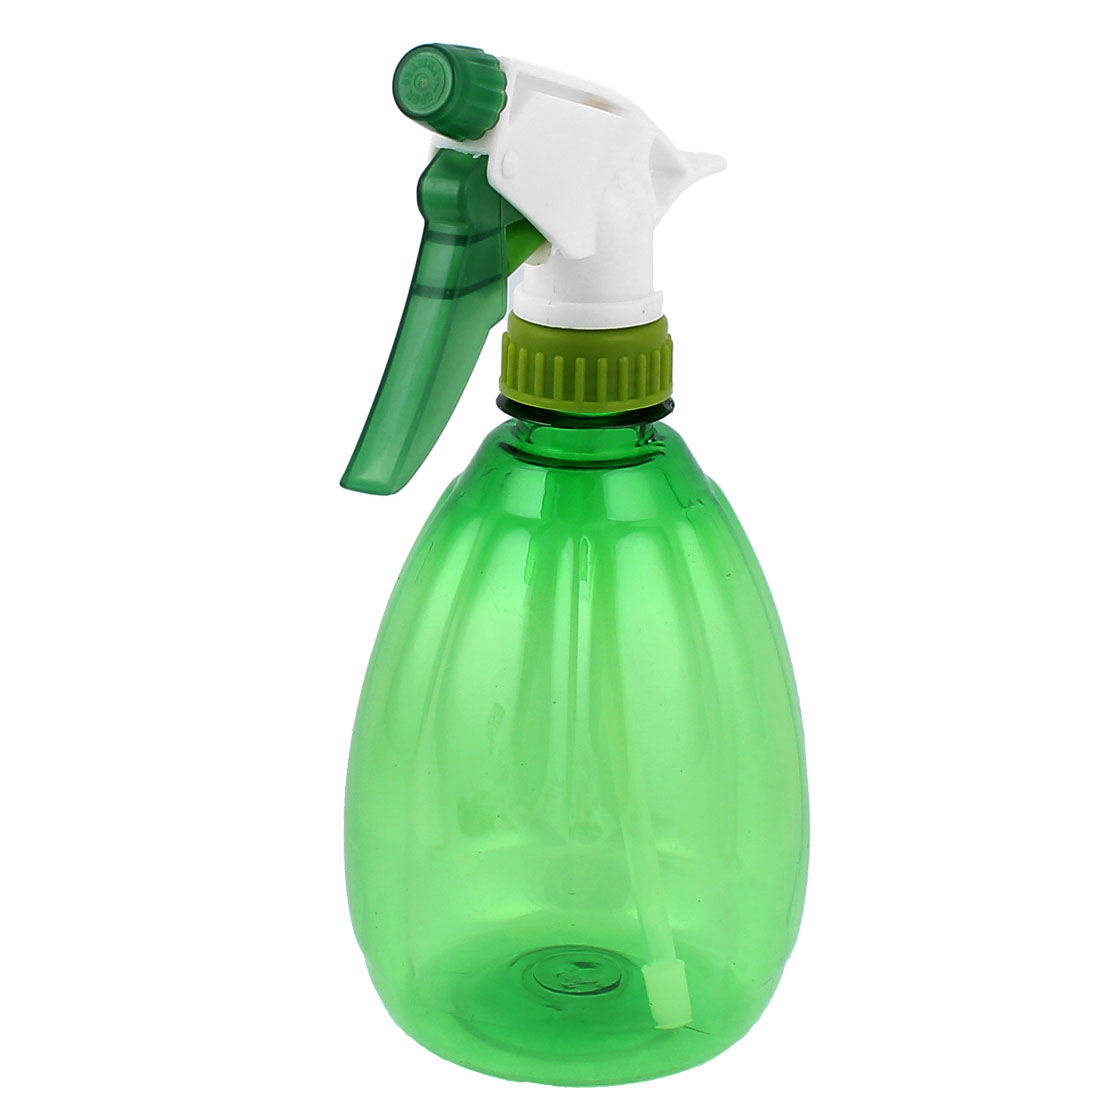 Cleaning Gardening Hand Trigger Water Sprayer Nozzle Spray Bottle Green 500ml